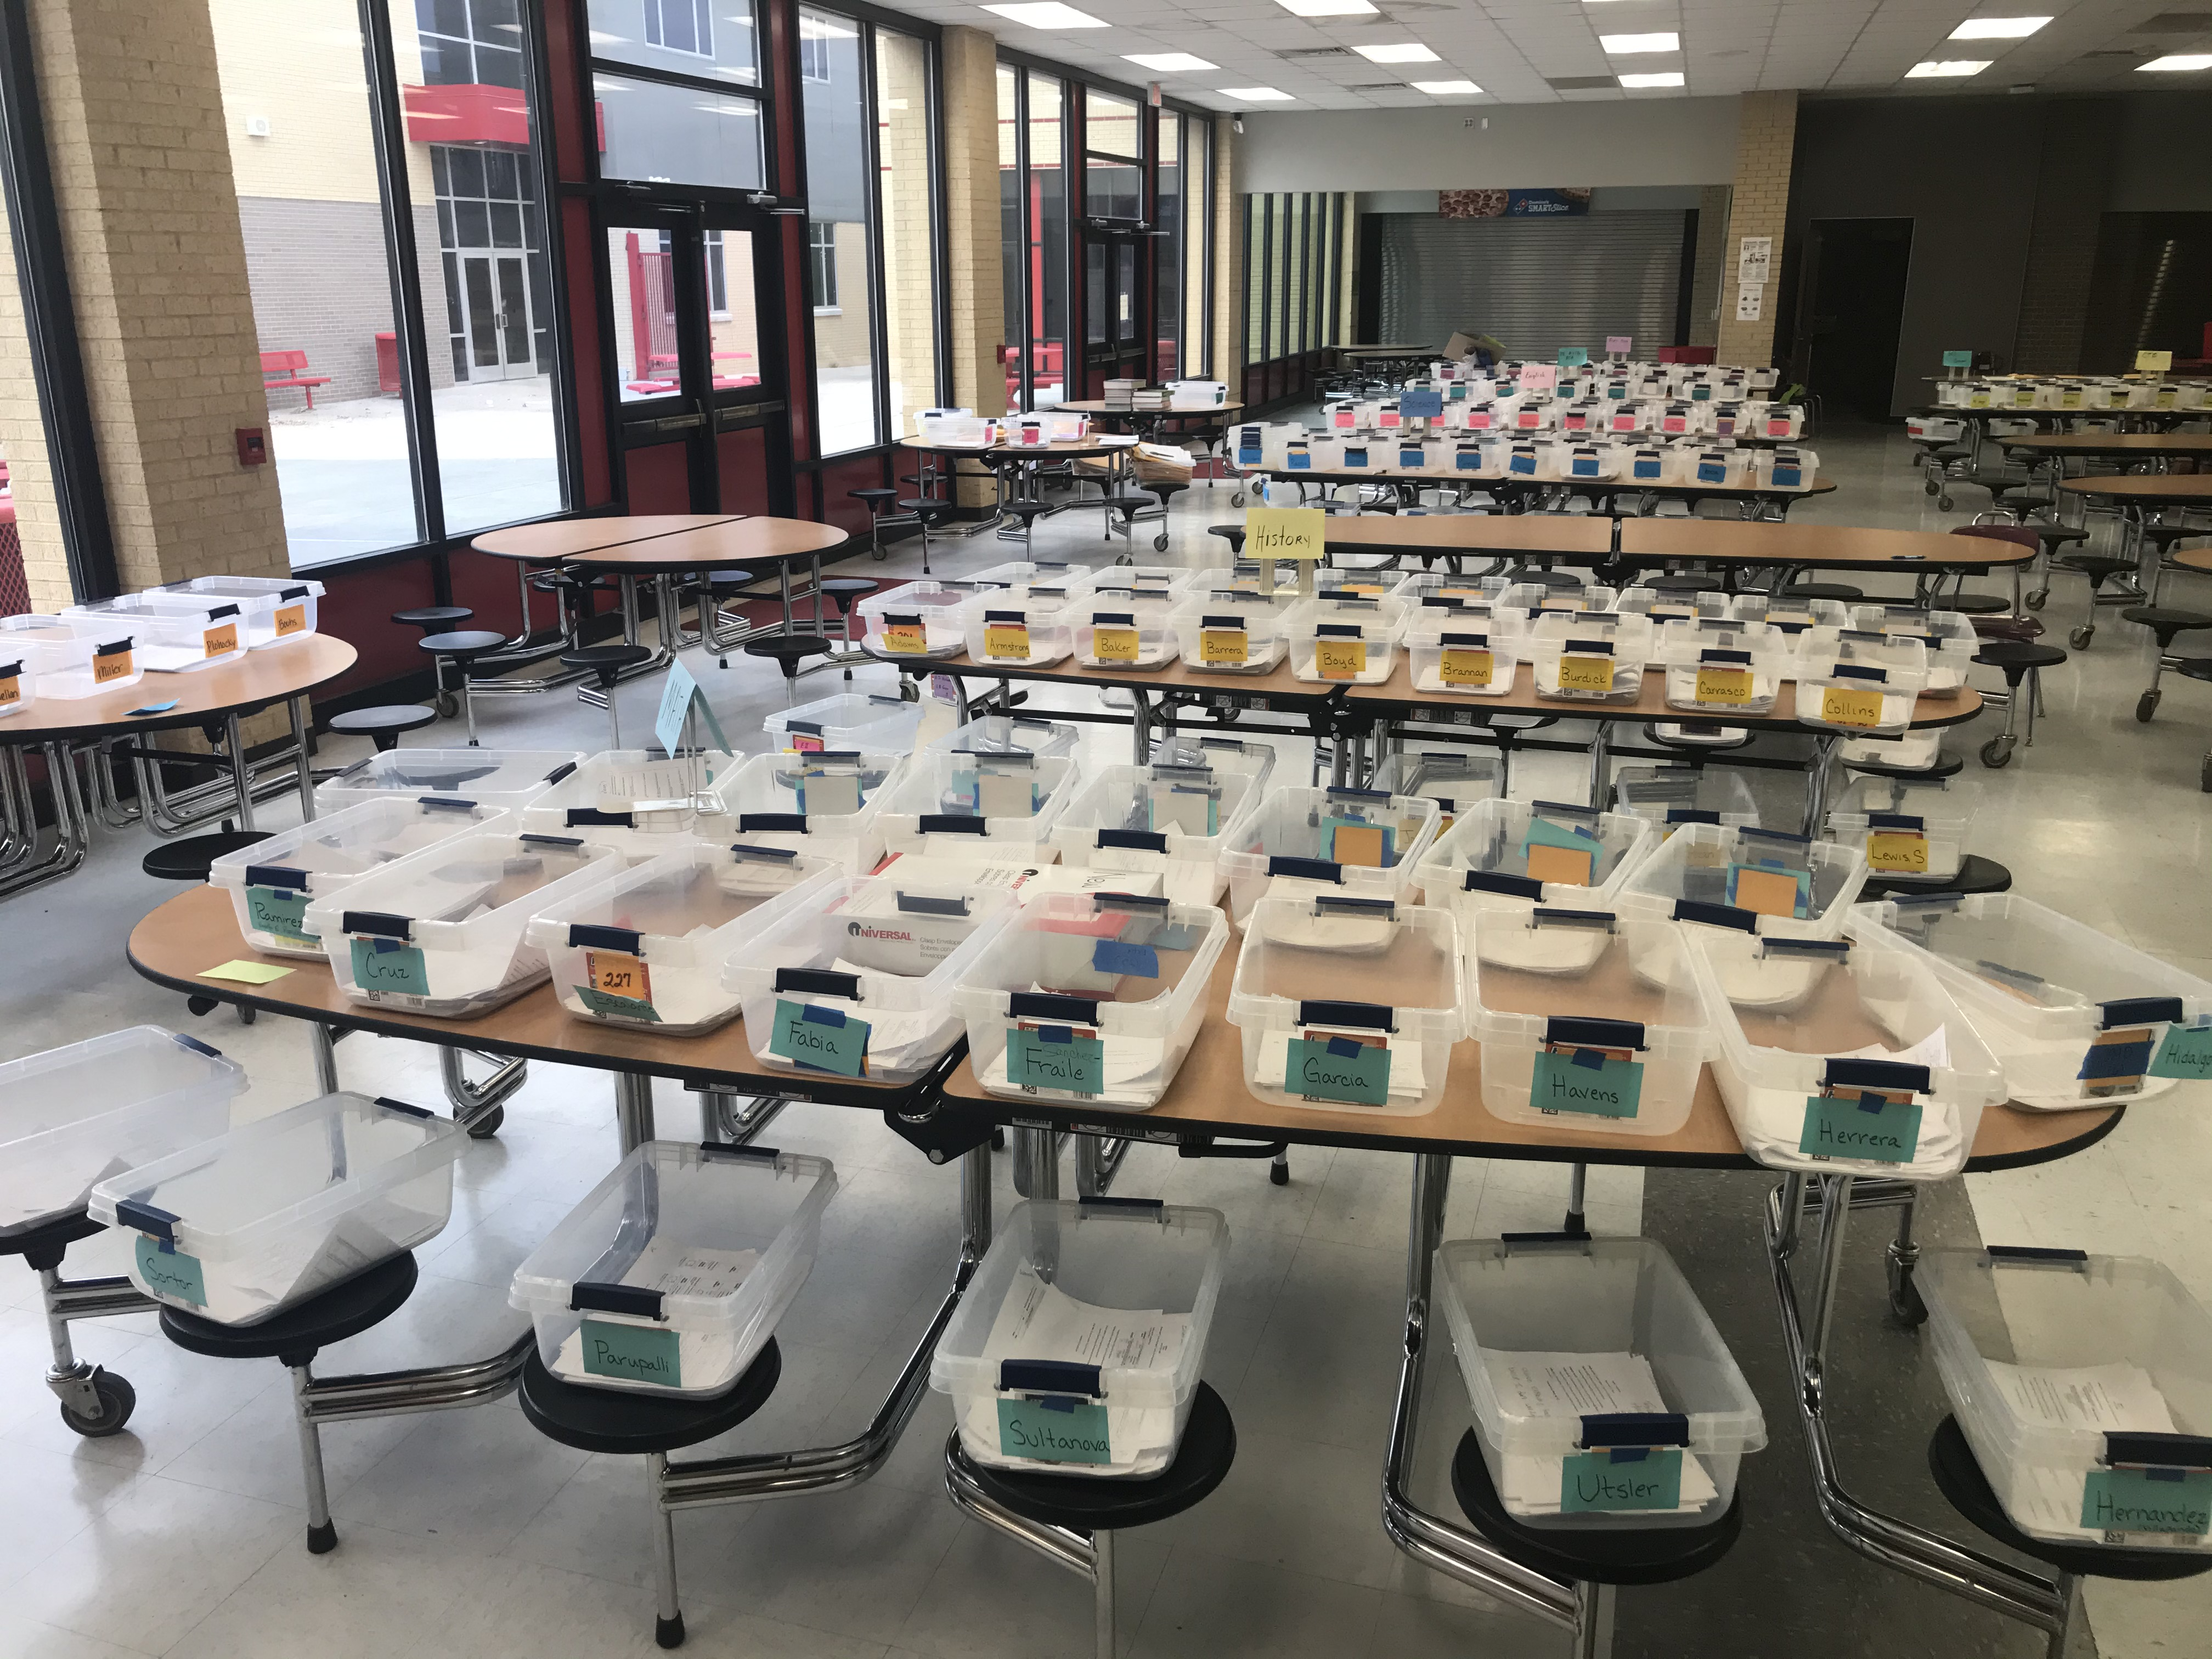 Rows and rows of assignment bins were broken out by subject and teacher for distribute work to students in Odessa High School's cafeteria this spring.